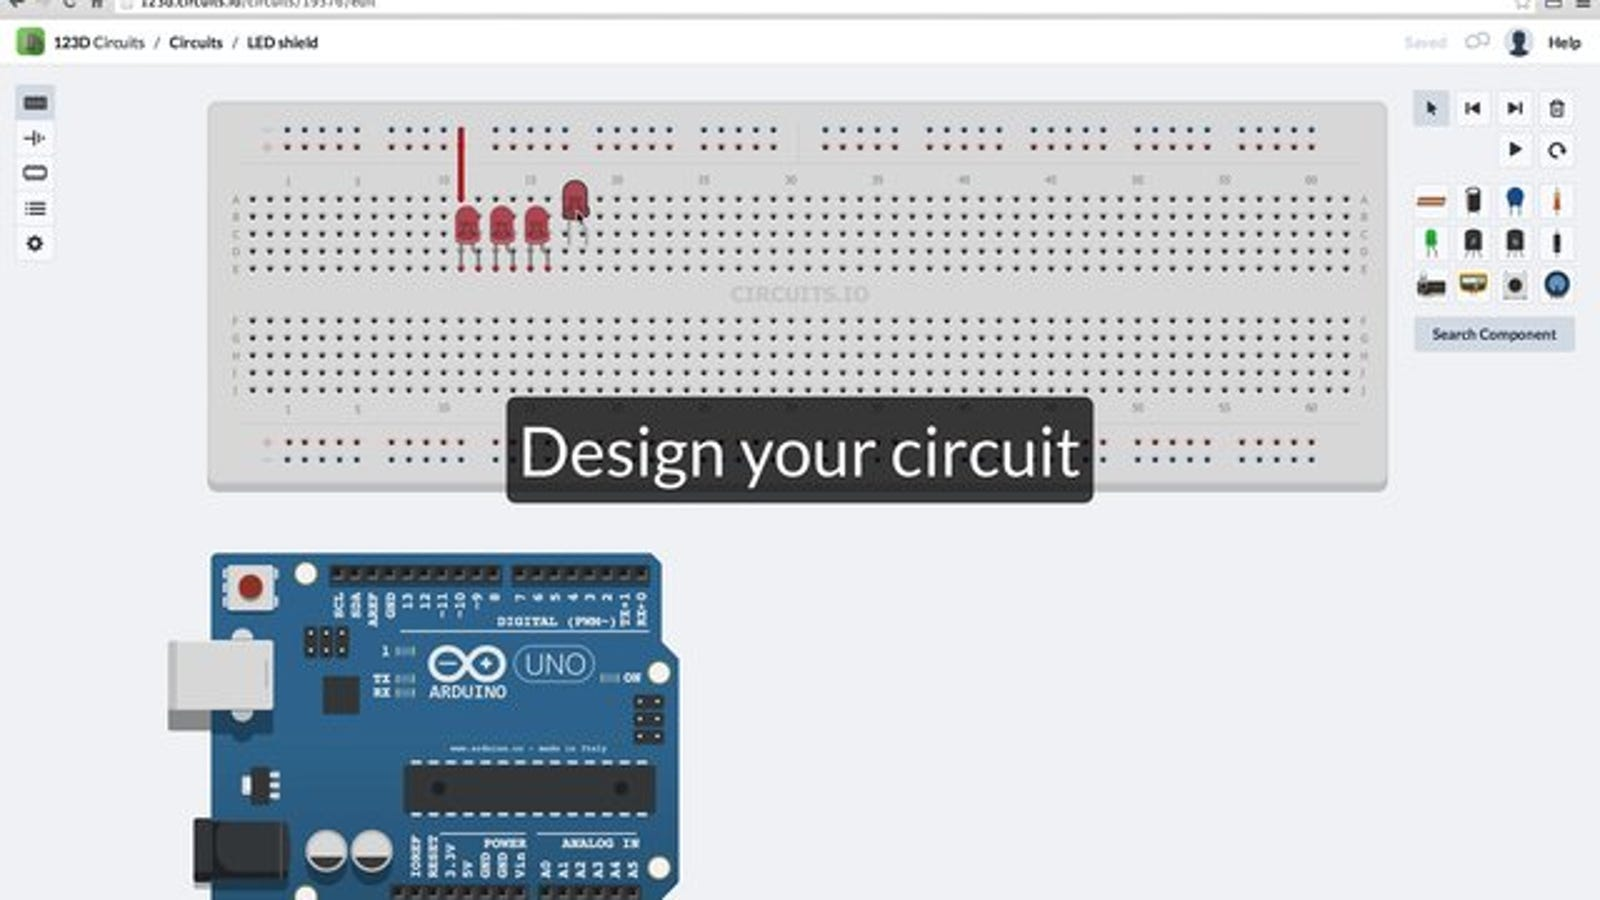 123D Circuits Is a Free, Collaborative Electronics Design Tool